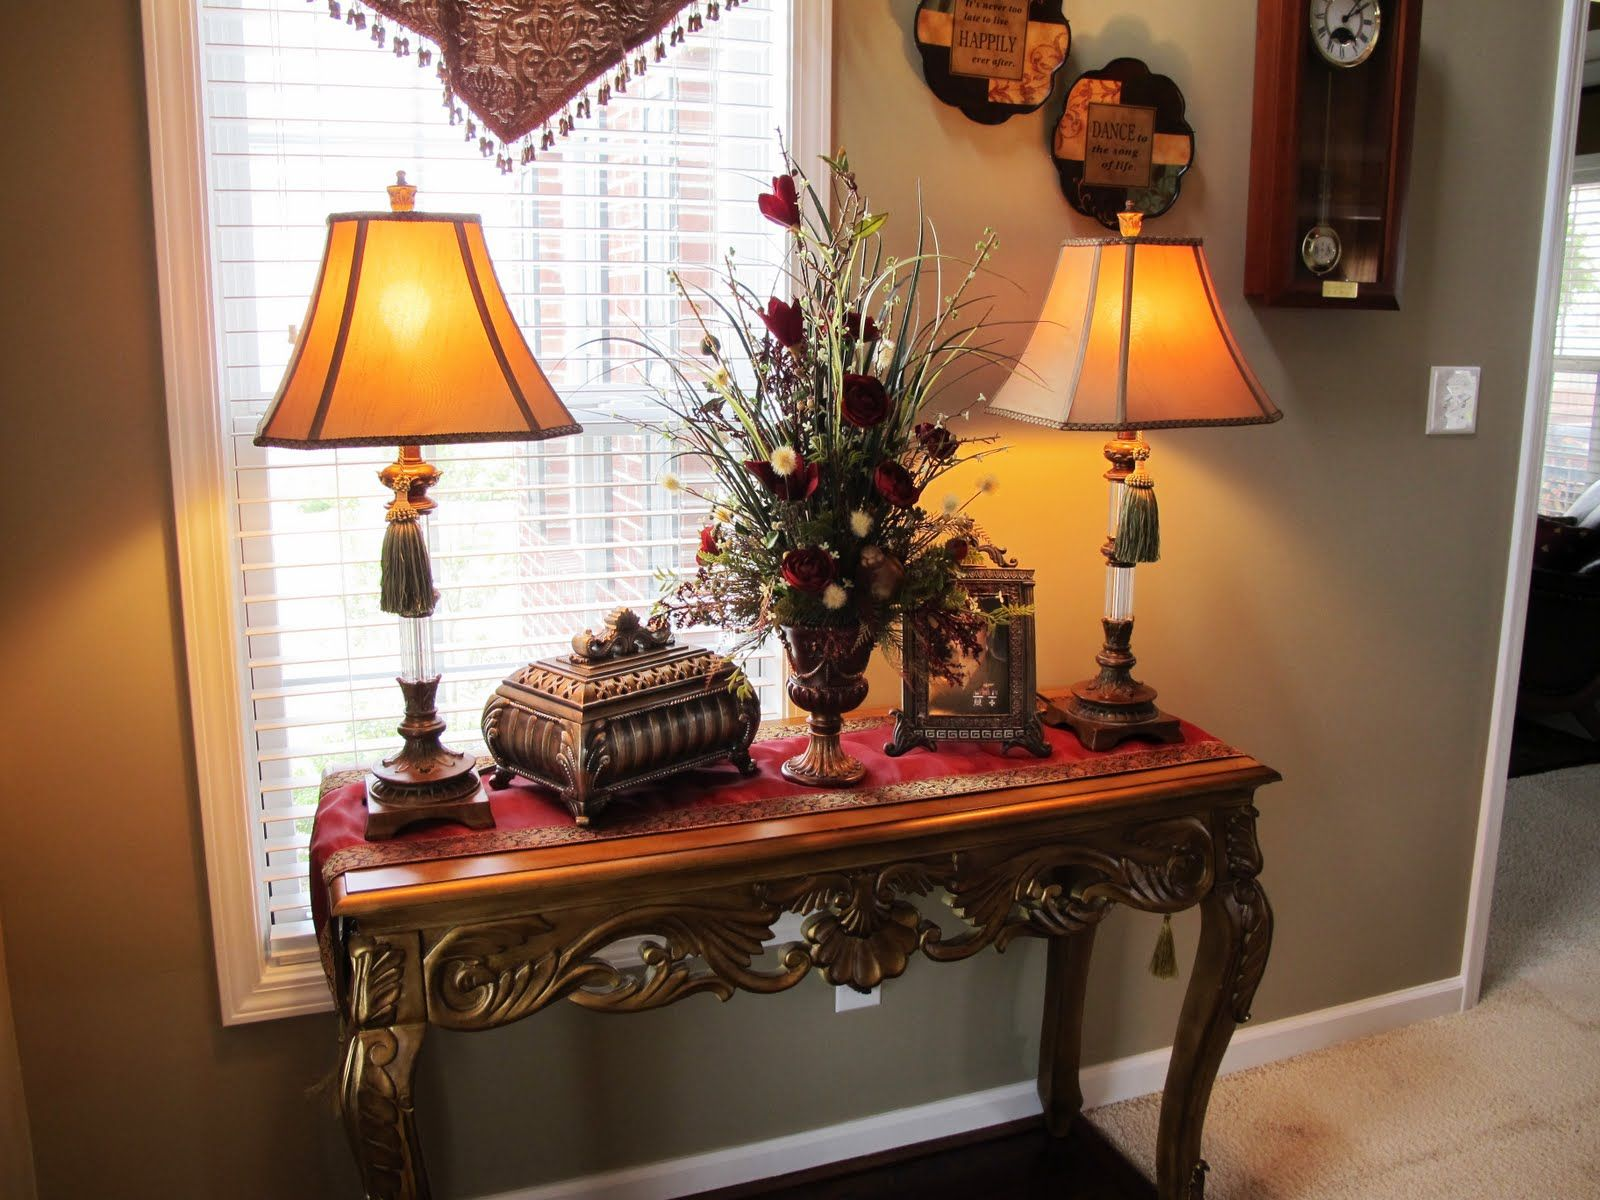 Table Decor And More Warm Home Decor Love Tassels On Lamps Foyer Tables